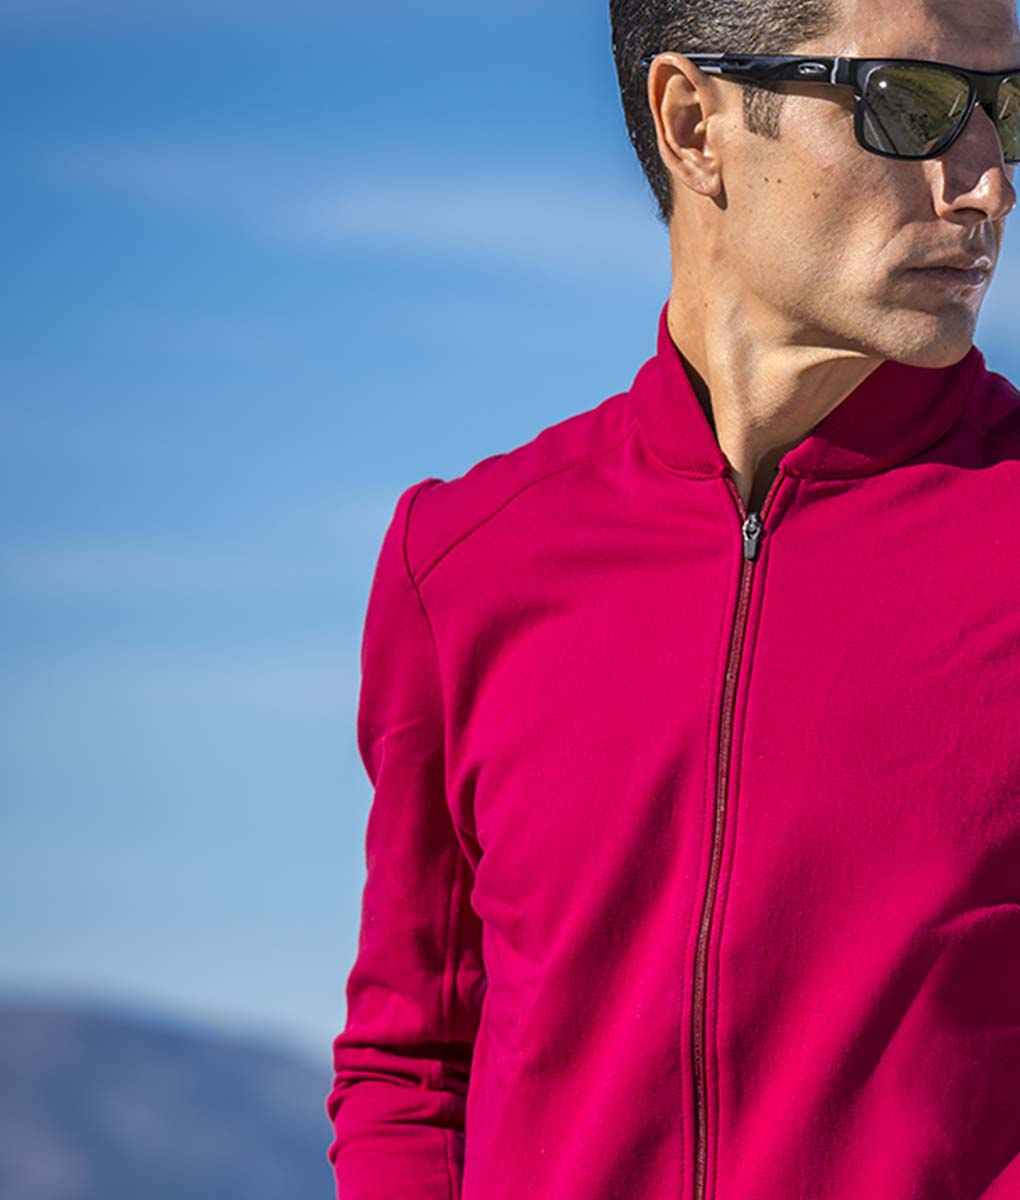 Casual-cycling-classic-maroon-cardigan-outside-front